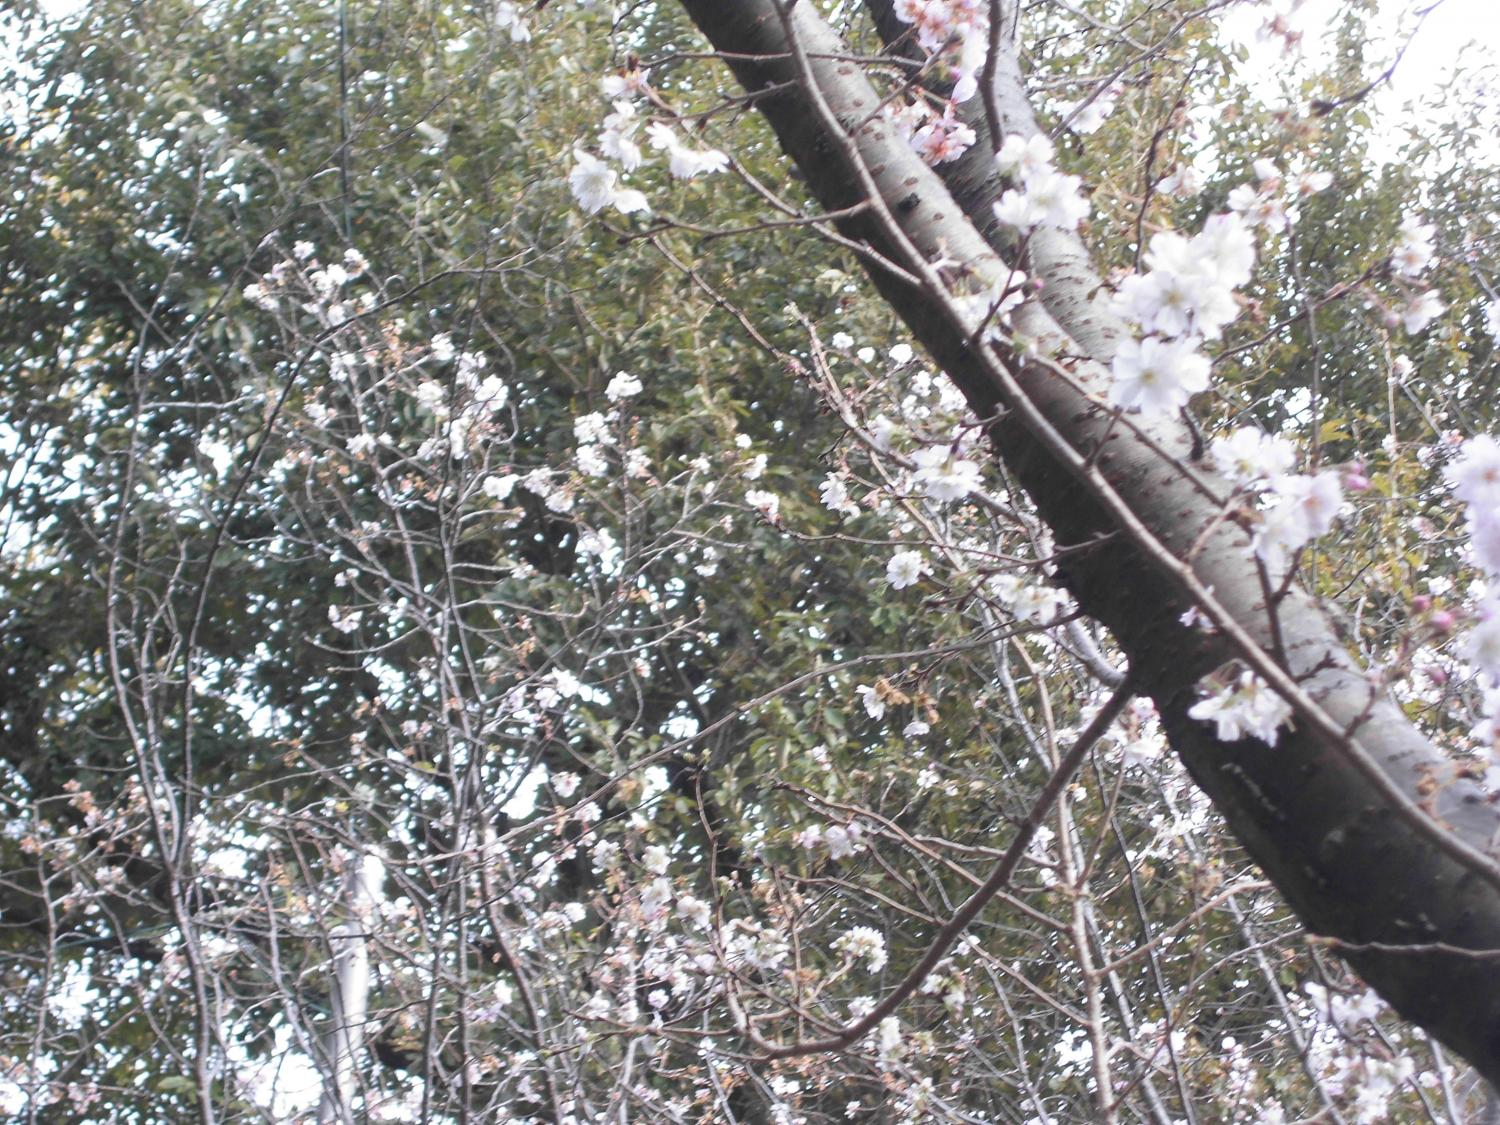 Image that cherry blossoms bloom this year in winter